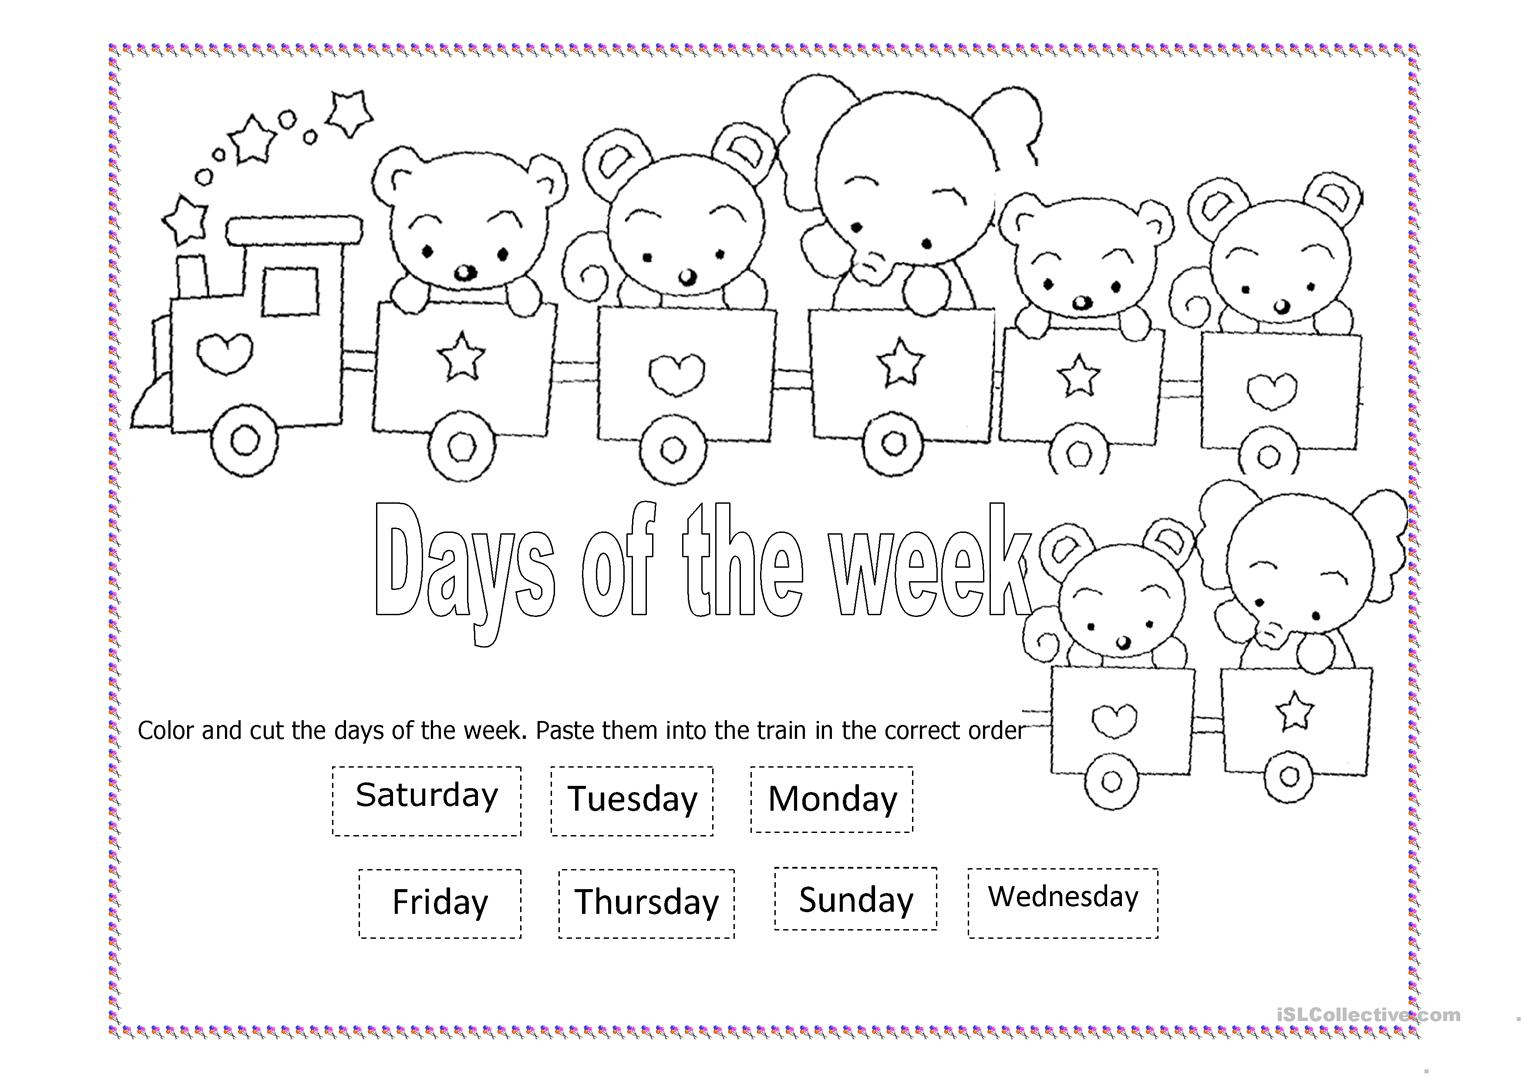 Worksheet Days Of The Week Worksheet Worksheet Fun